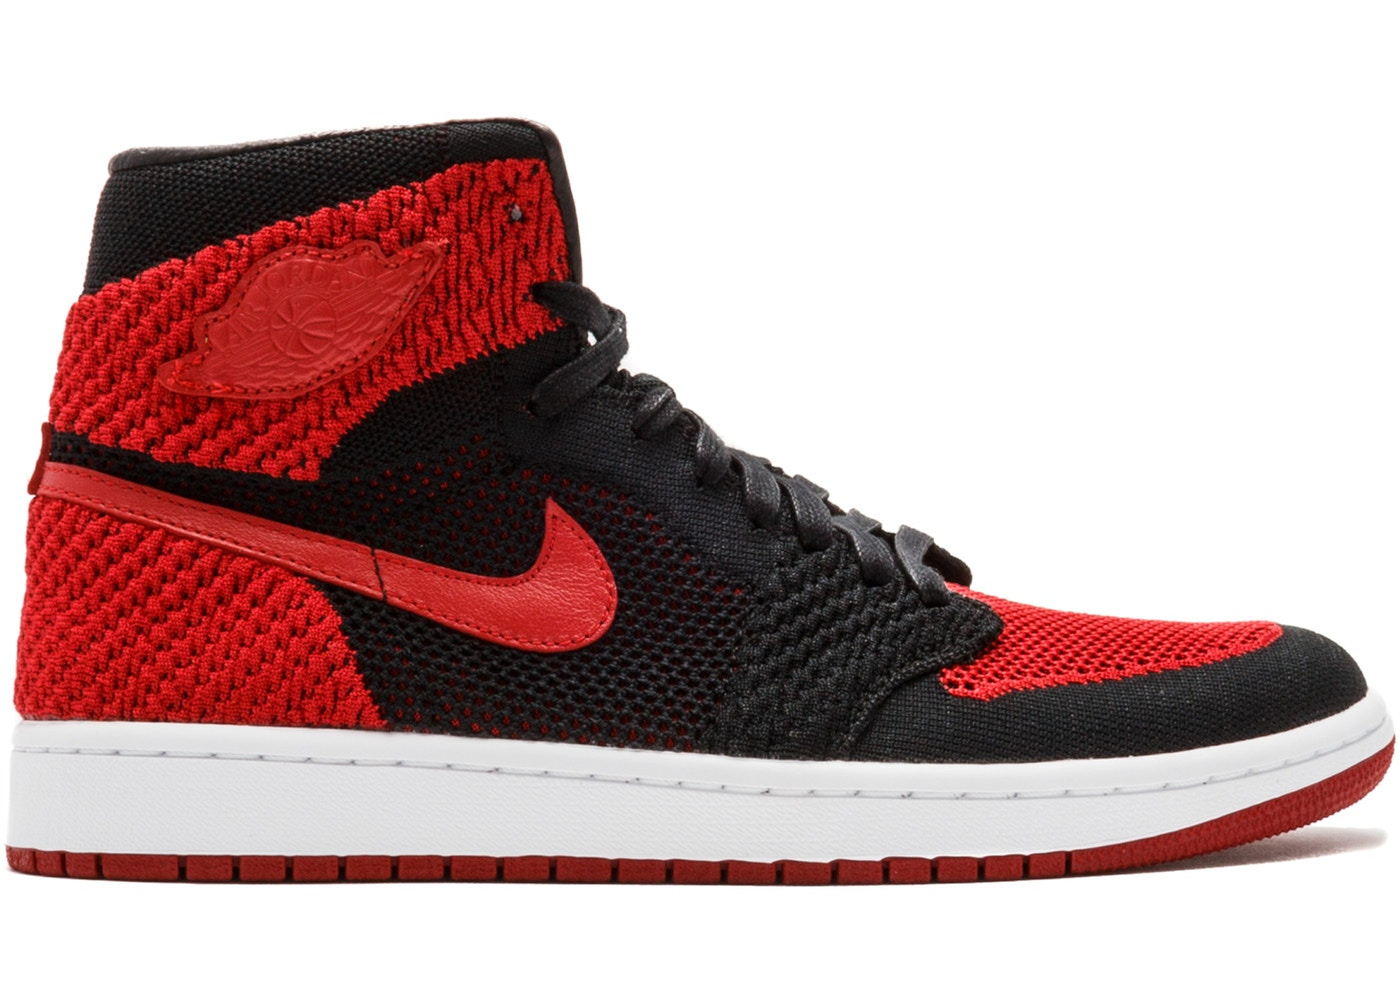 5dded83024a1 Sell. or Ask. Size 7. View All Bids. Jordan 1 Retro High Flyknit Bred